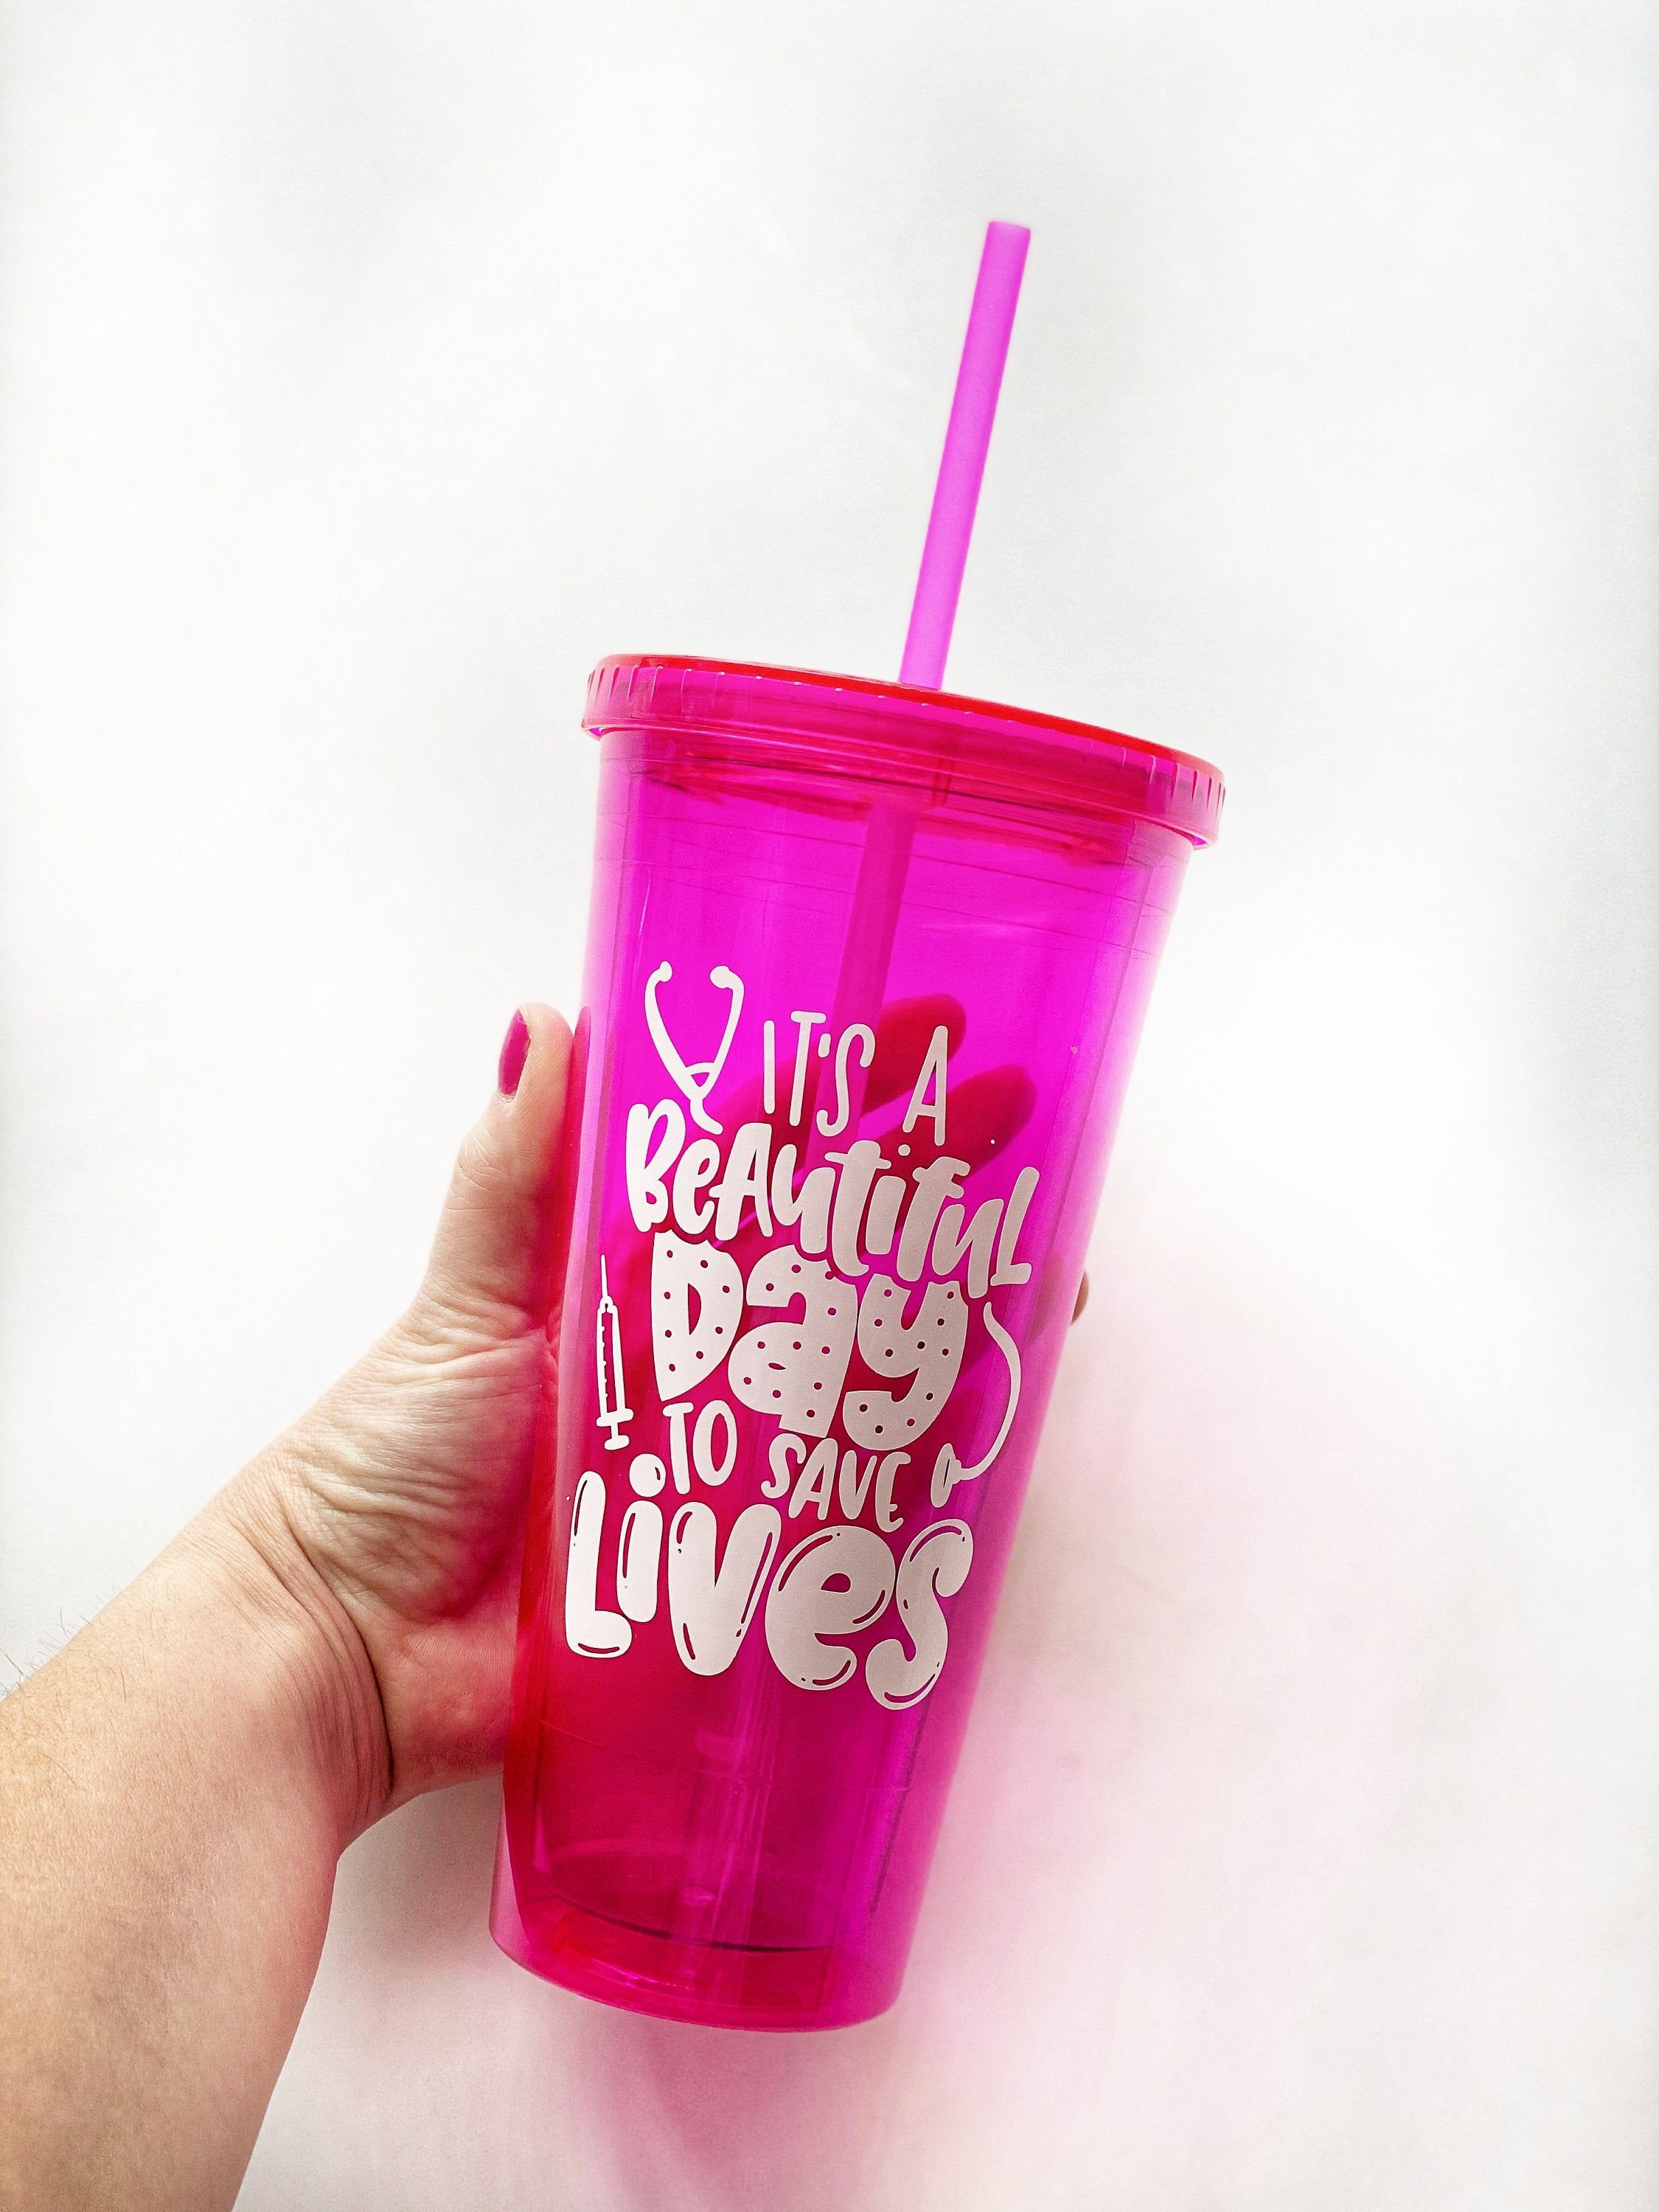 Its a great day to save lives nurse appreciation cup